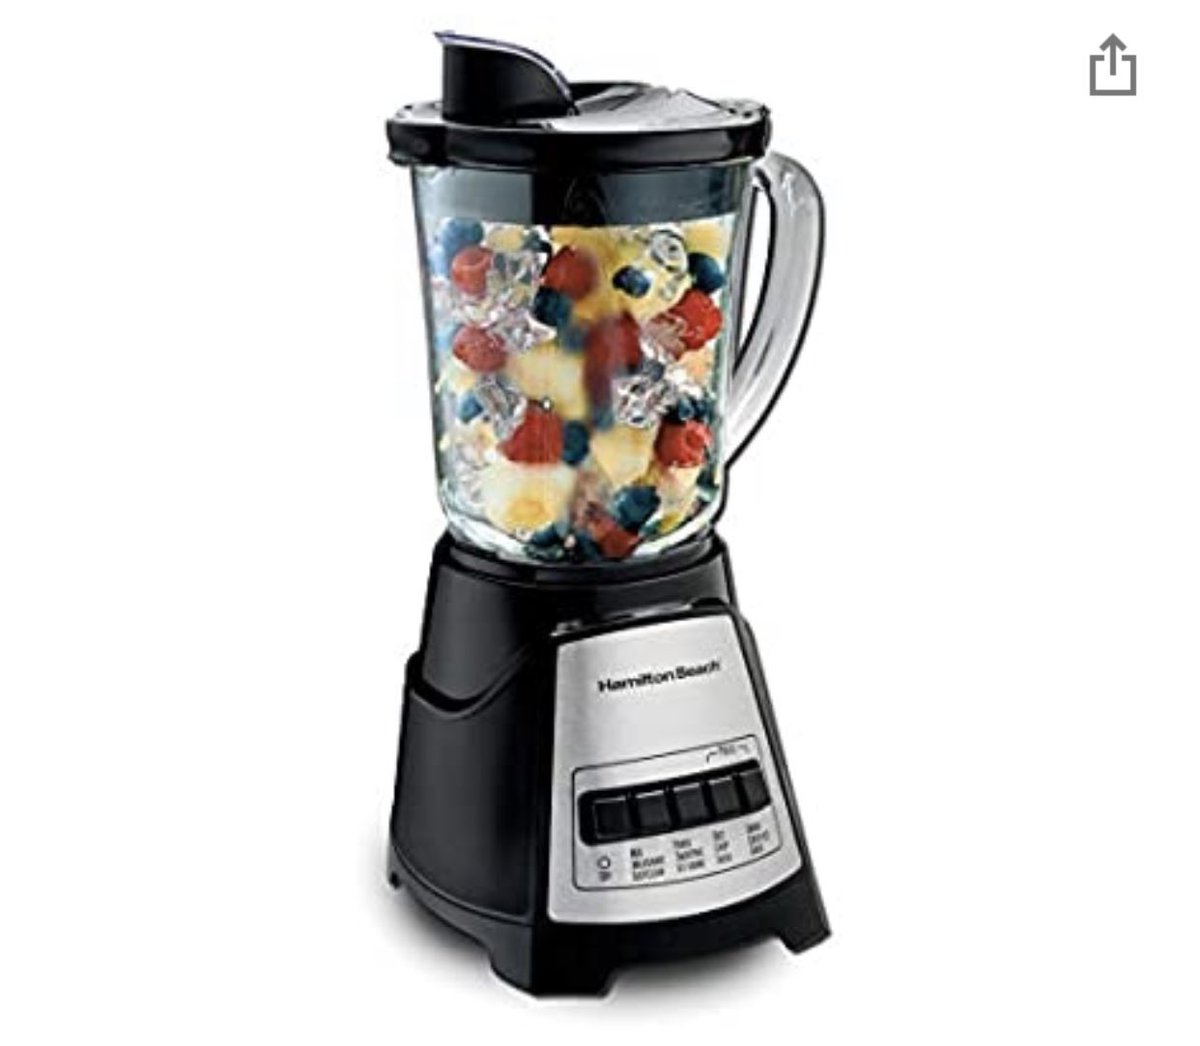 Hamilton Beach Power Elite Blender with 12 Functions for Puree, Ice Crush, Shakes and Smoothies and 40oz BPA Free Glass Jar, Black and Stainless Steel pic.twitter.com/i6PurxQbP4